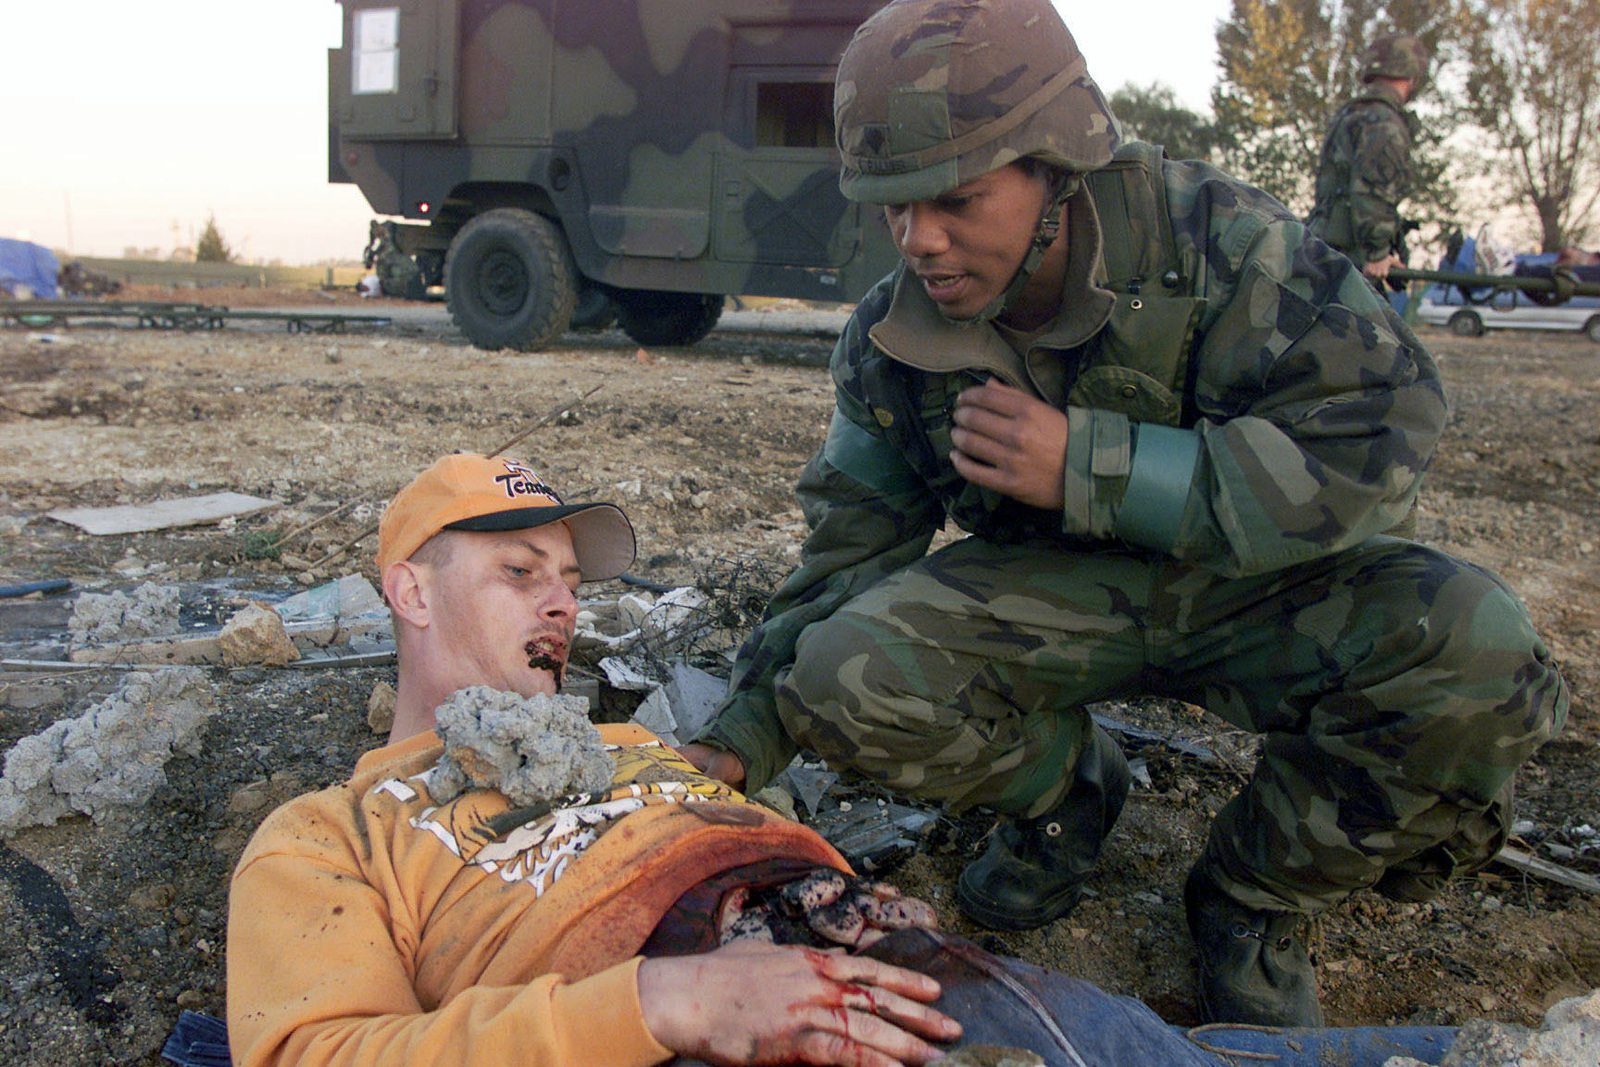 A US Army member of the 52nd Medical Evacuation Battallion, Camp Humphries, South Korea, takes part in a medical evacuation exercise during FOAL EAGLE 2000, on October 26th, 2000. FOAL EAGLE is the largest joint and combined field training drill conducted annually in South Korea, running from 25 October to 3 November. About 25,000 U.S. troops will take part in the drill, including active duty, Reserve and National Guard troops from bases in the United States and elsewhere in the Pacific. The exercise demonstrates U.S. and South Korean military cooperation